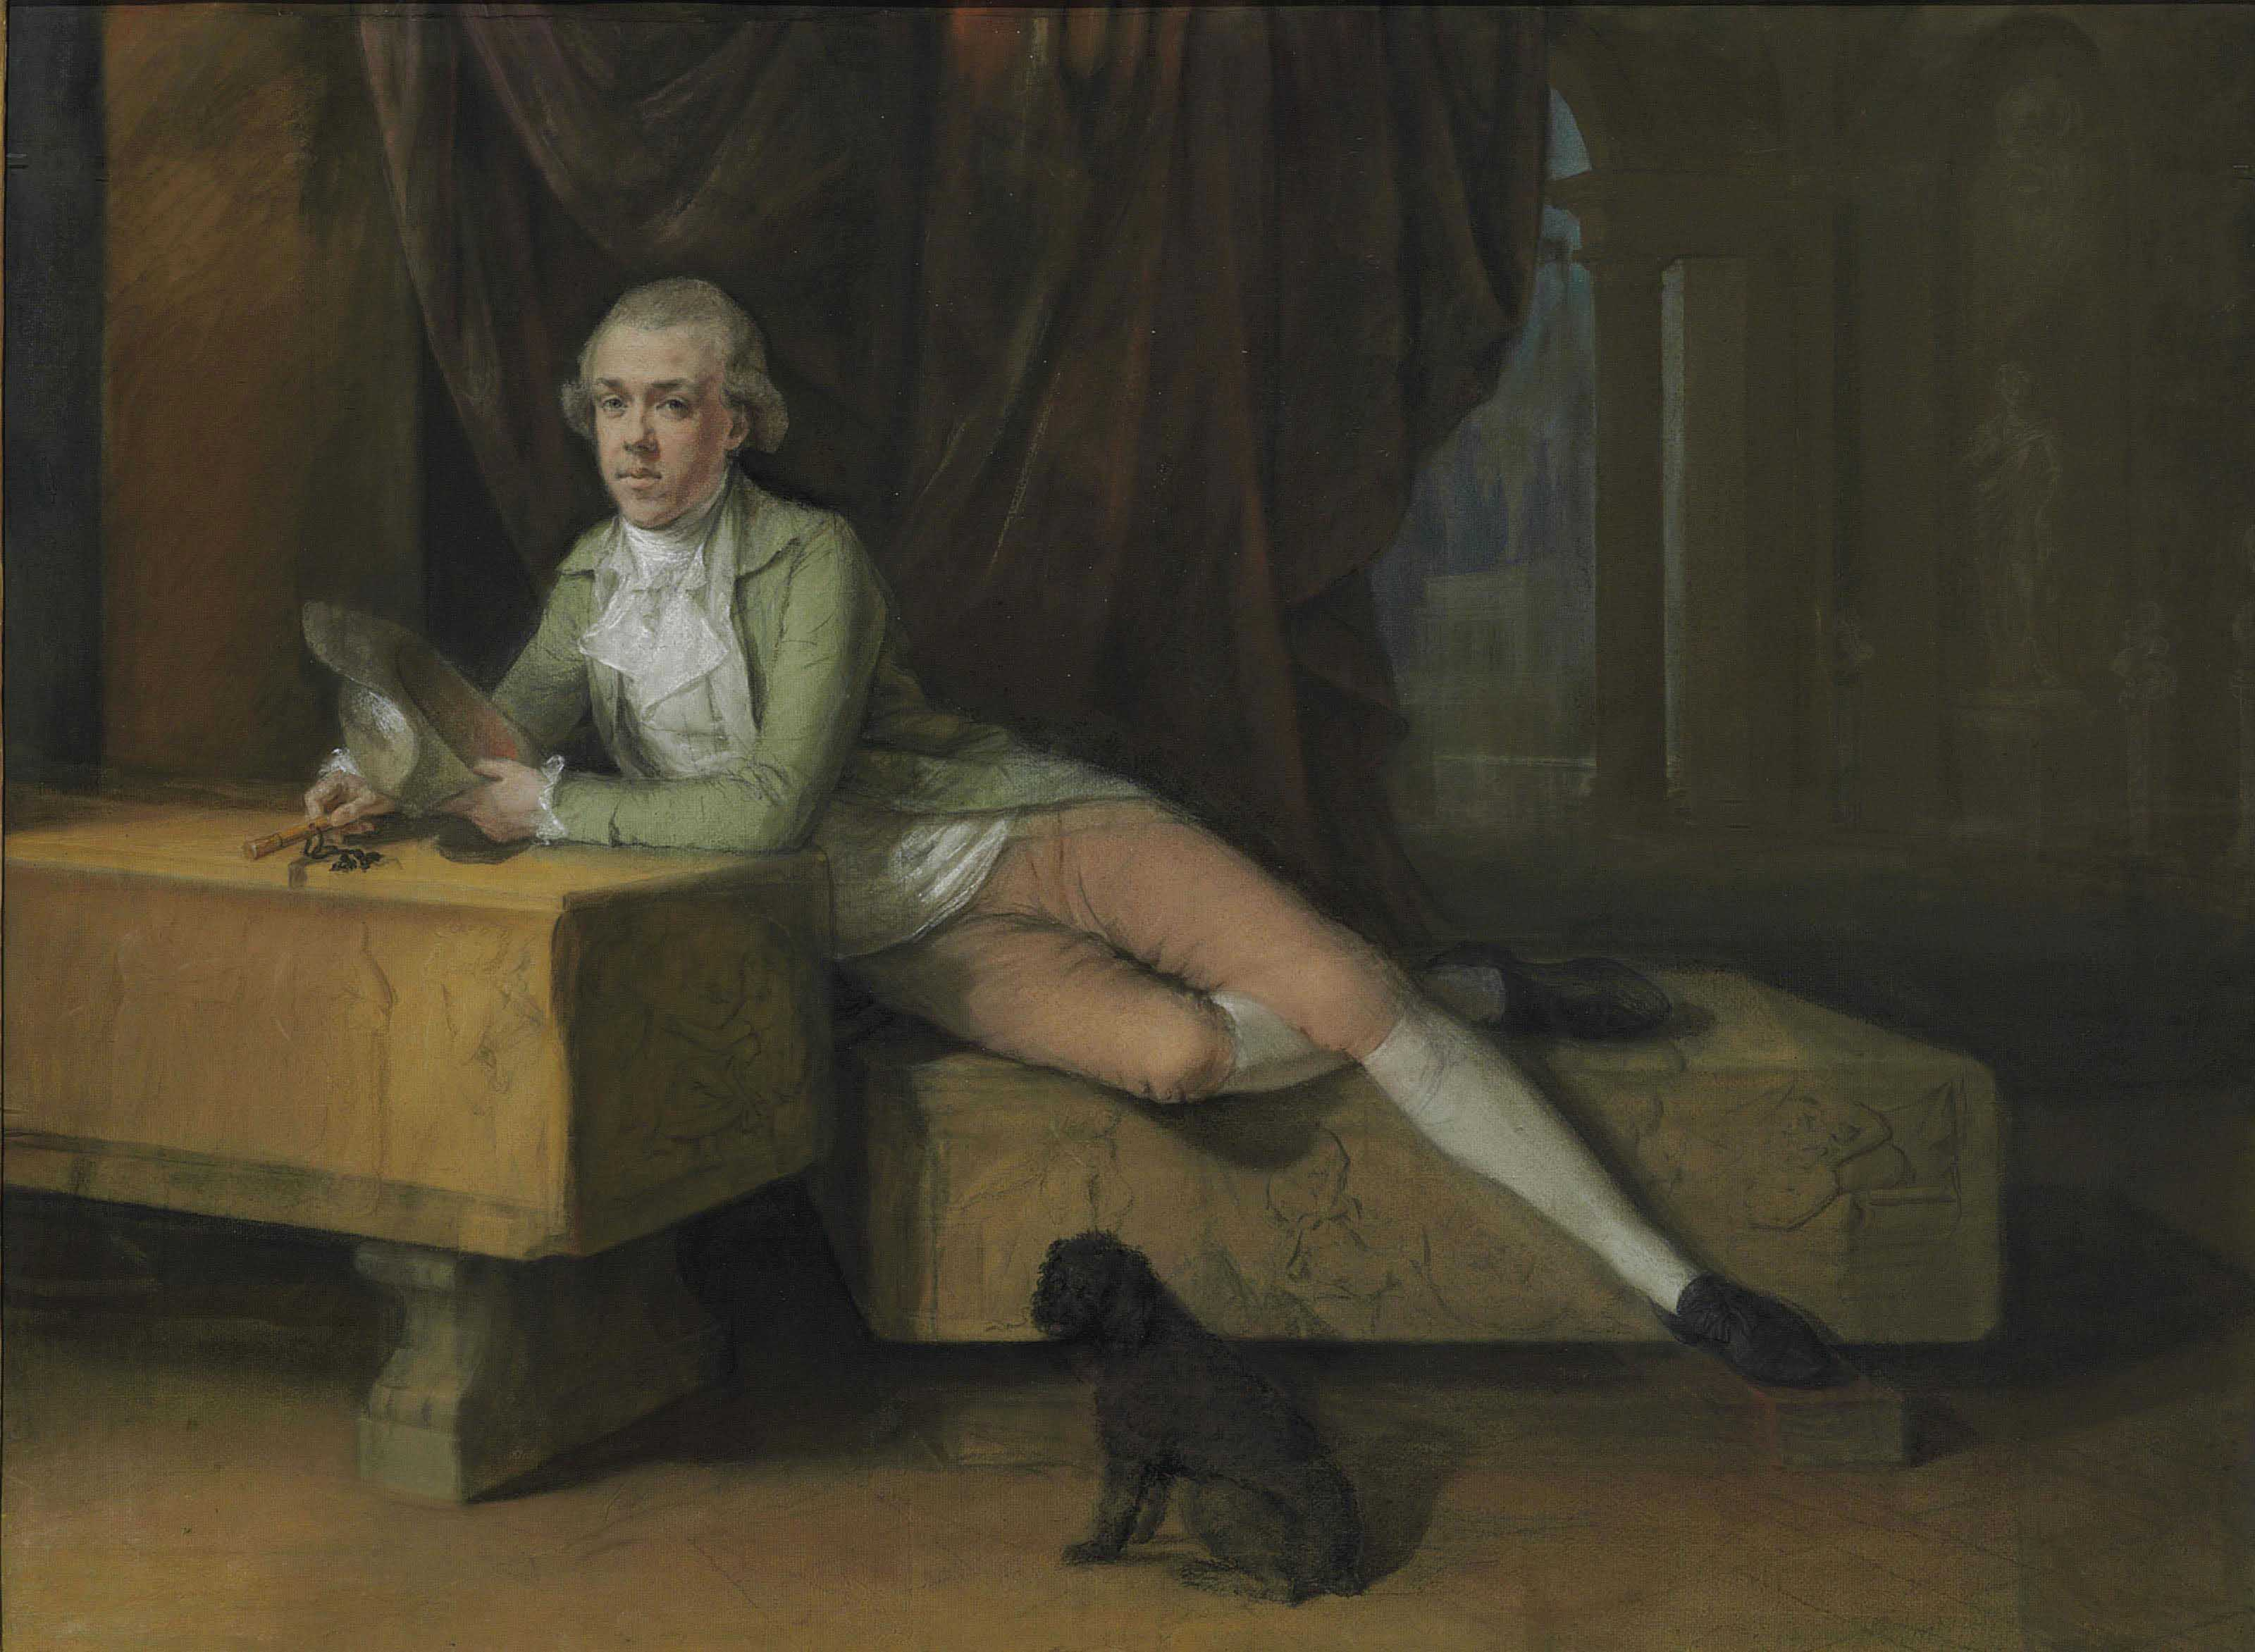 Portrait of James Colyear Dawkins (1760-1840) of Standlynch Park, Wiltshire, leaning on a sarcophagus during his Grand Tour in the 1780s, possibly at the Villa Albani, Rome